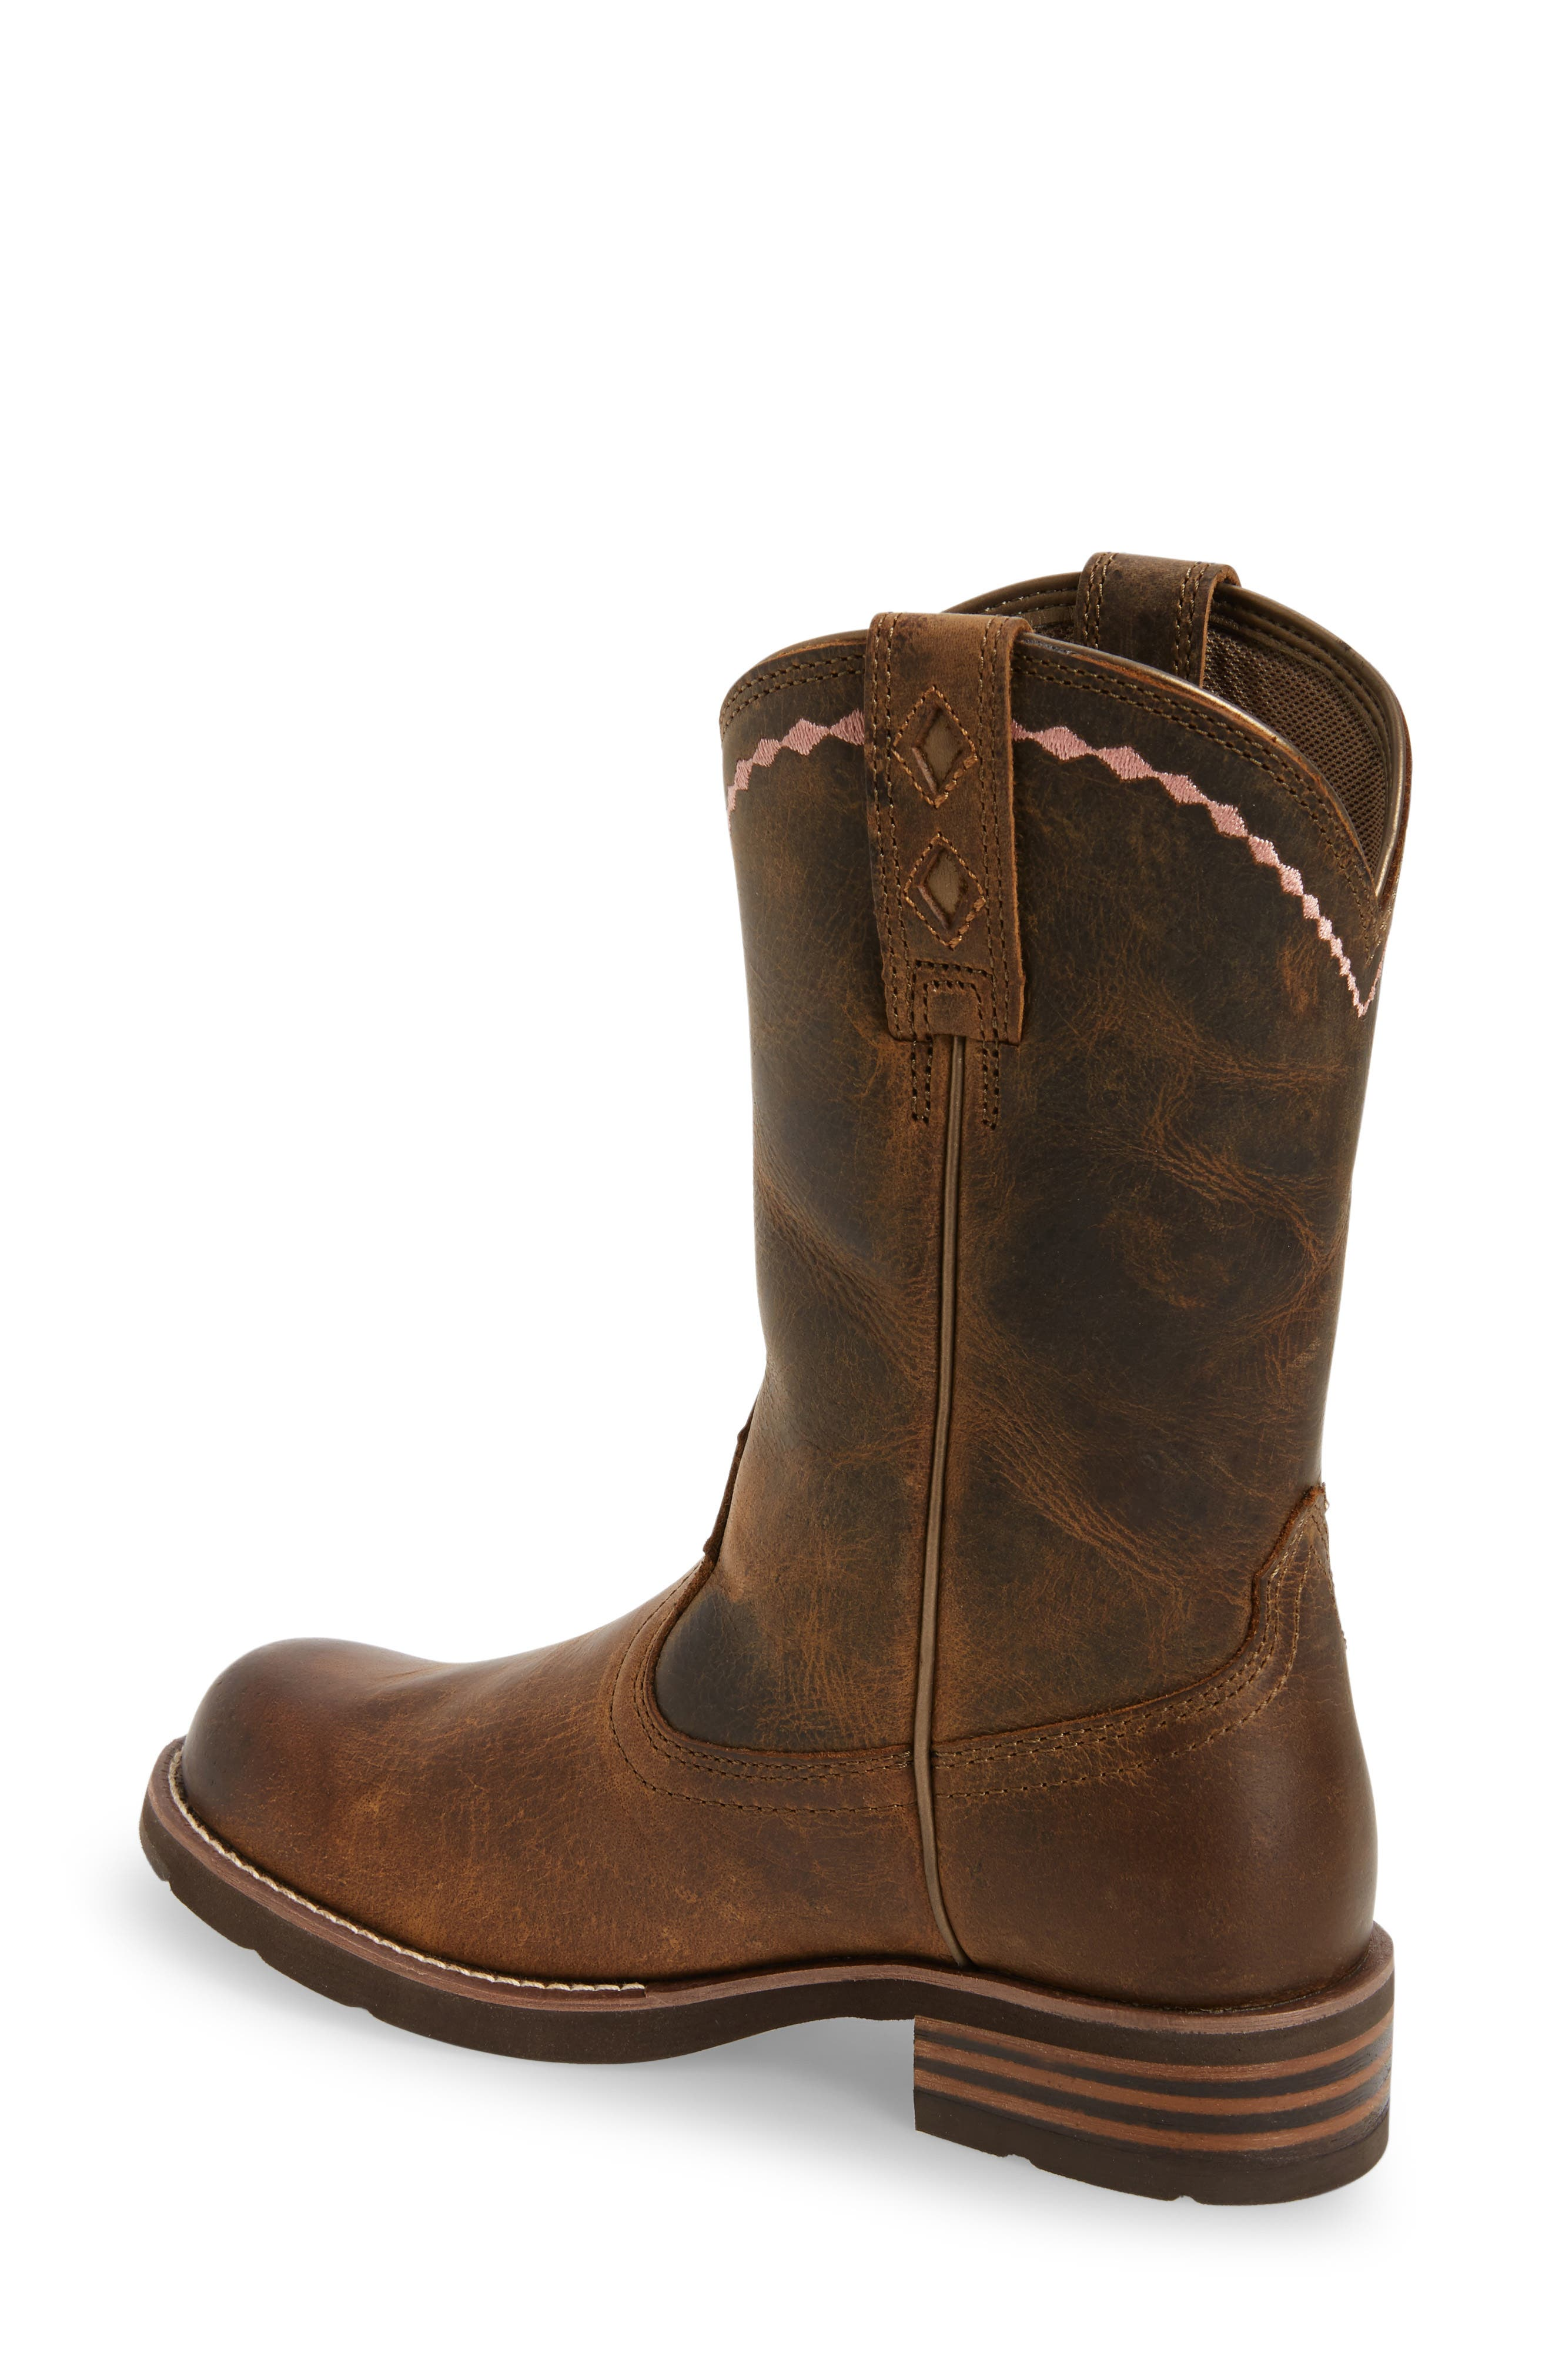 Unbridled Roper Western Boot,                             Alternate thumbnail 2, color,                             DISTRESSED BROWN LEATHER